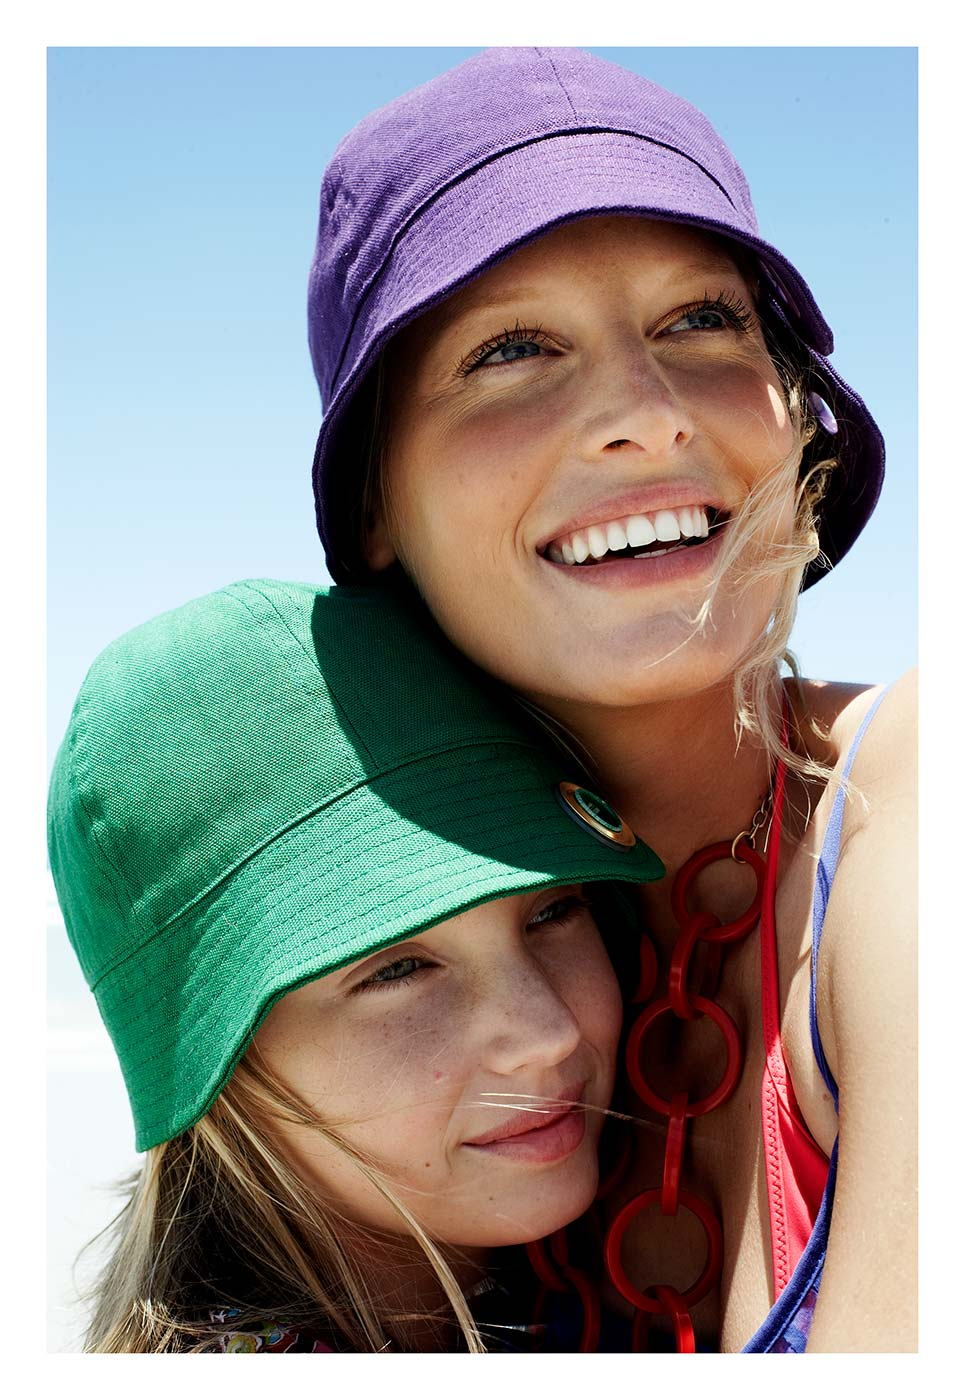 8_mom&girl_hats-004786-2-copy